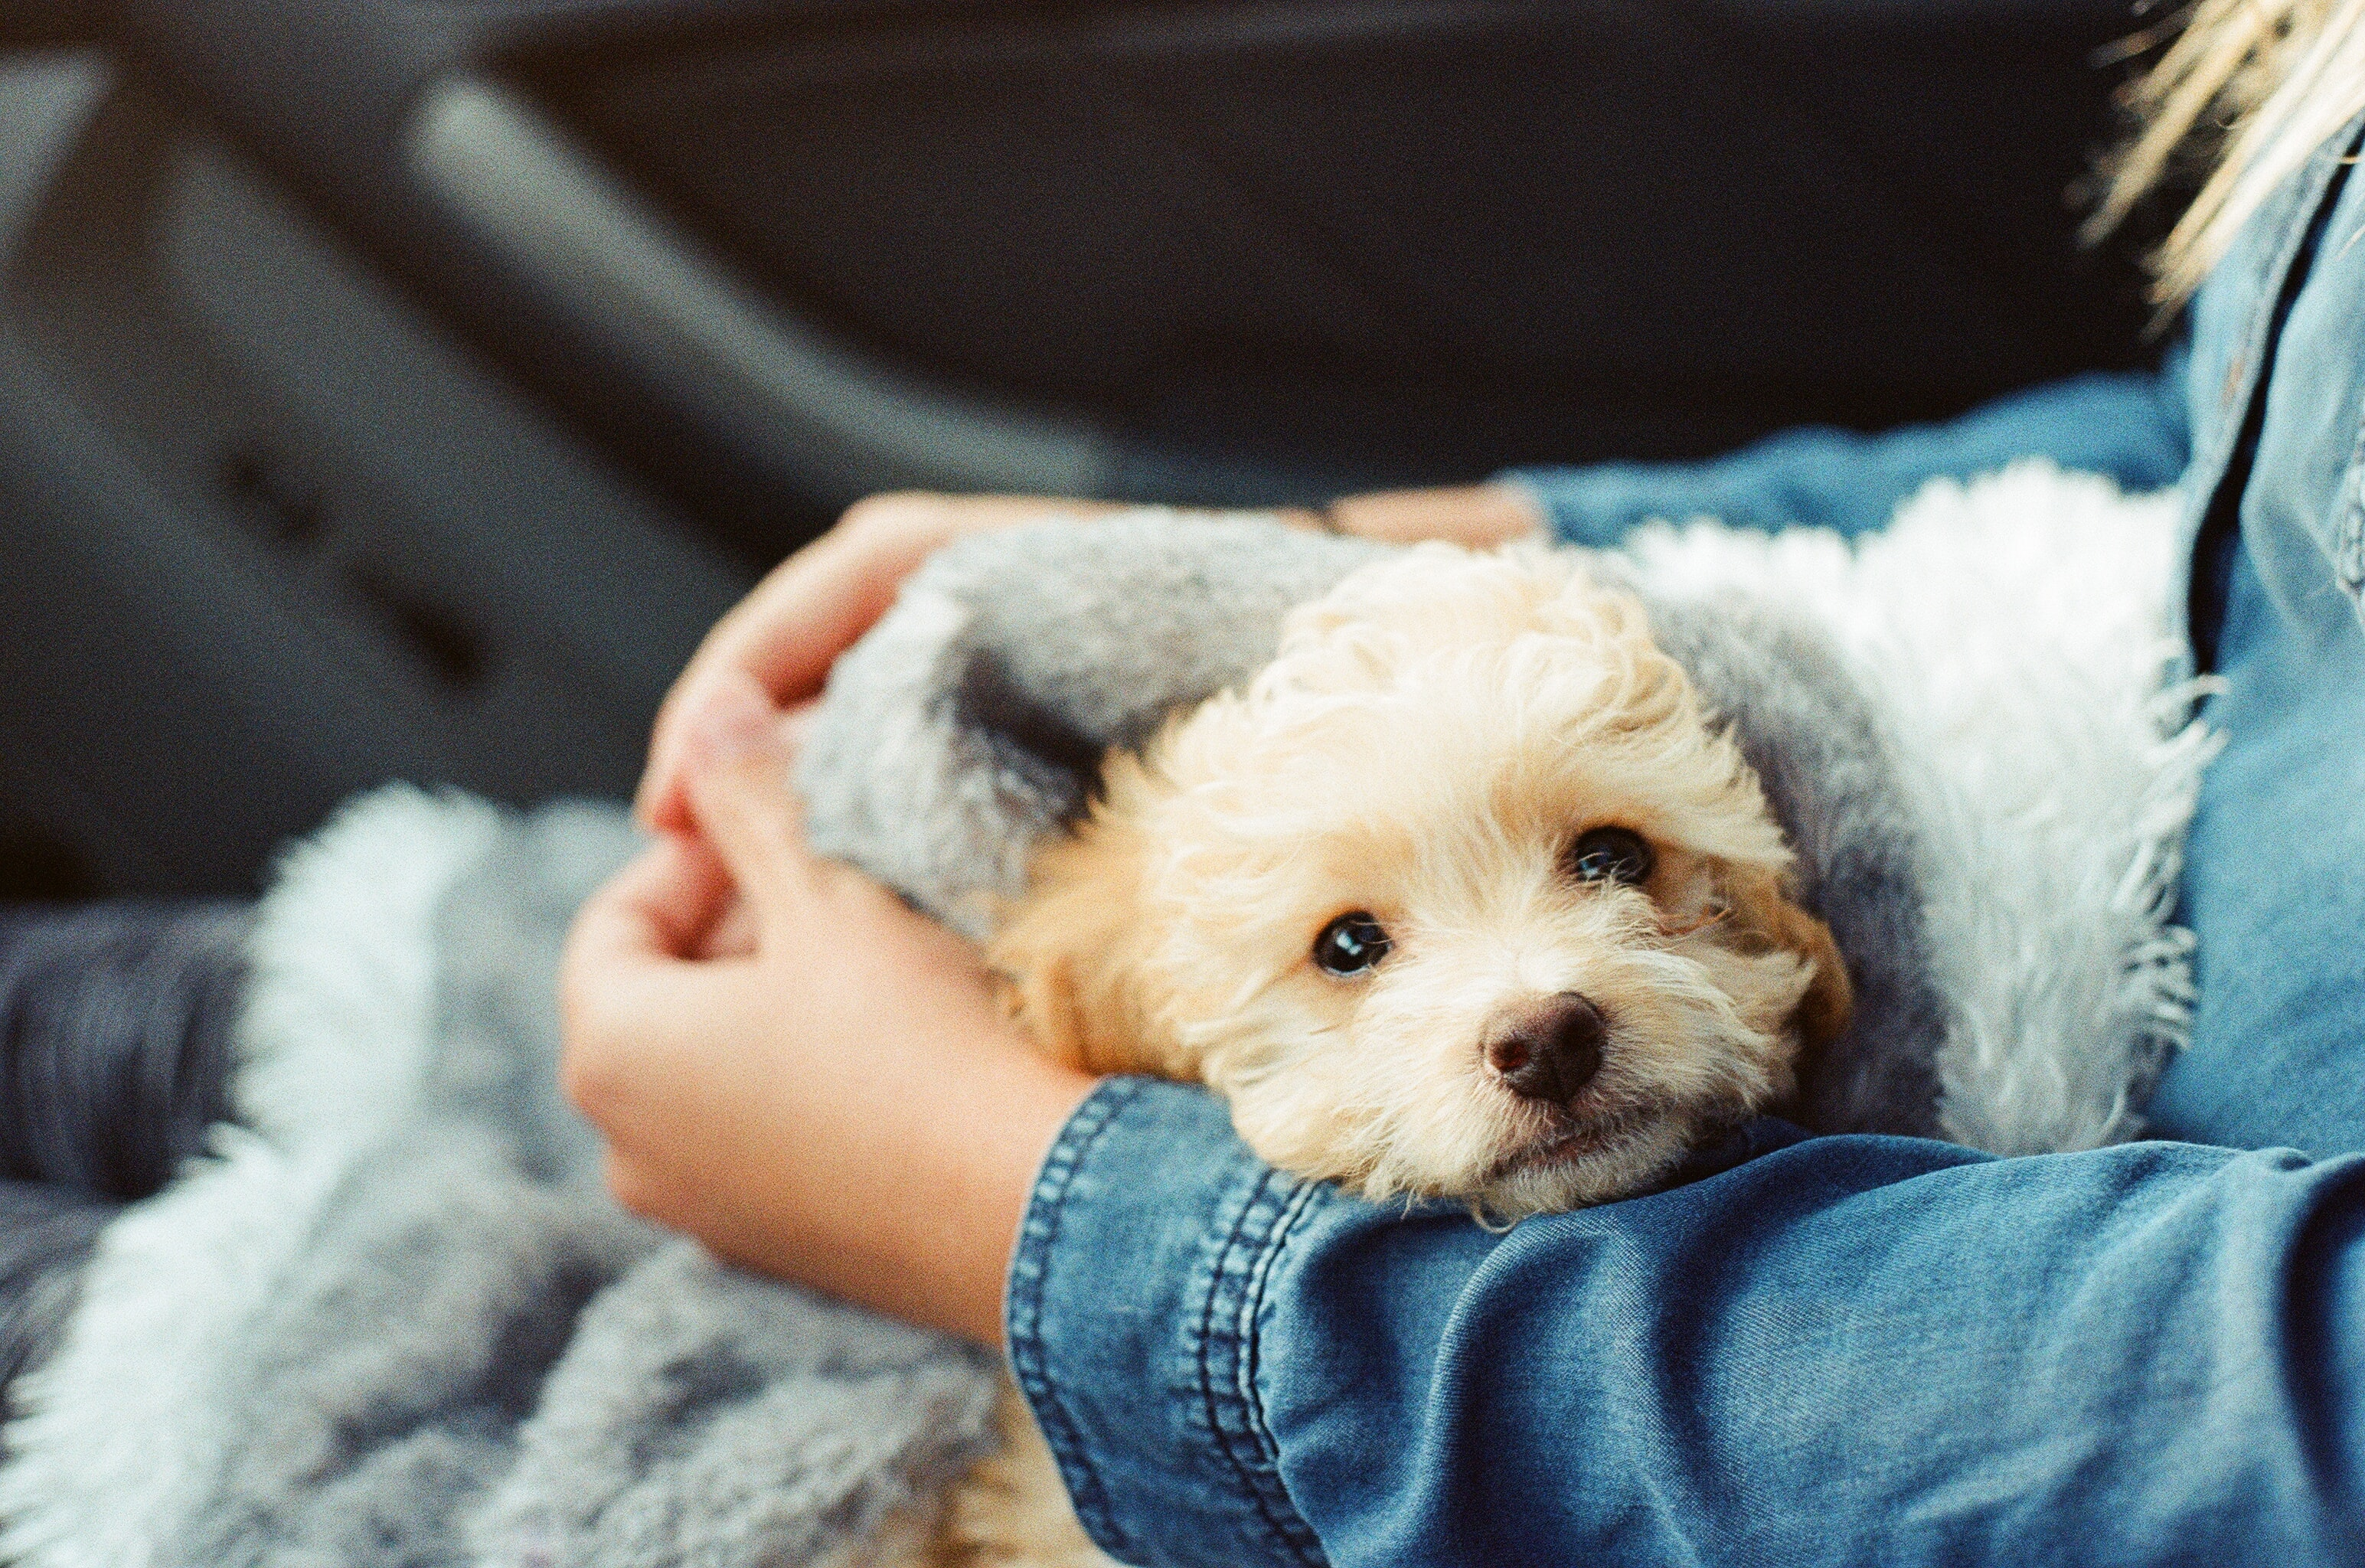 Cute fluffy puppy sitting in its owner's lap